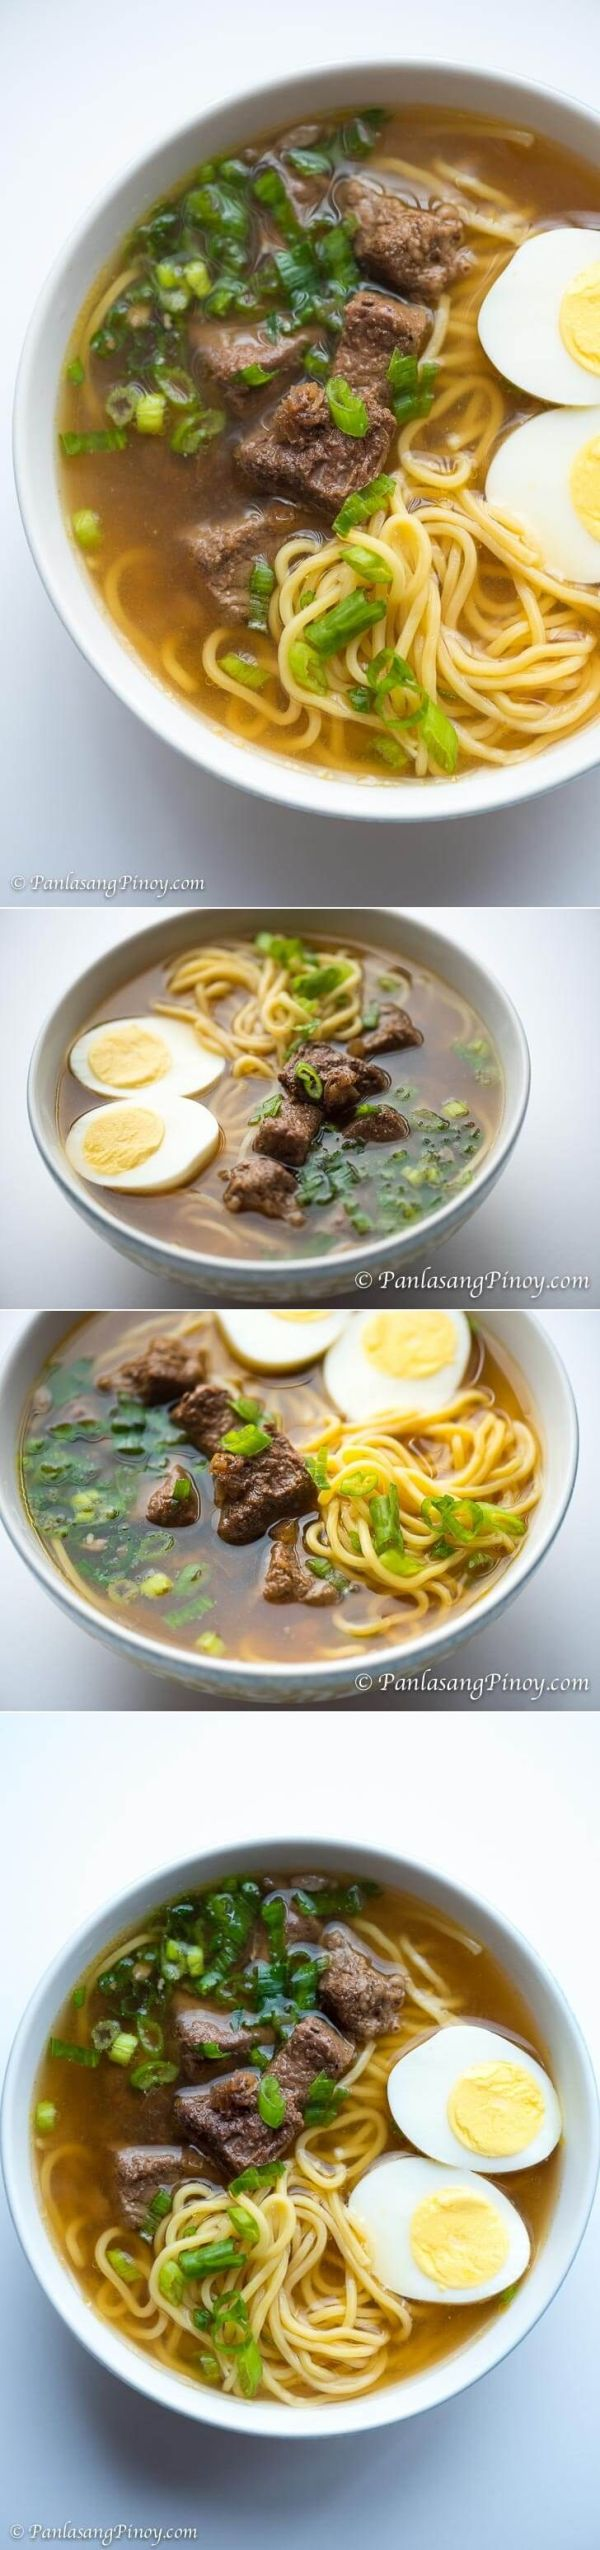 178 best images about Filipino foods,snacks and fusion on ...